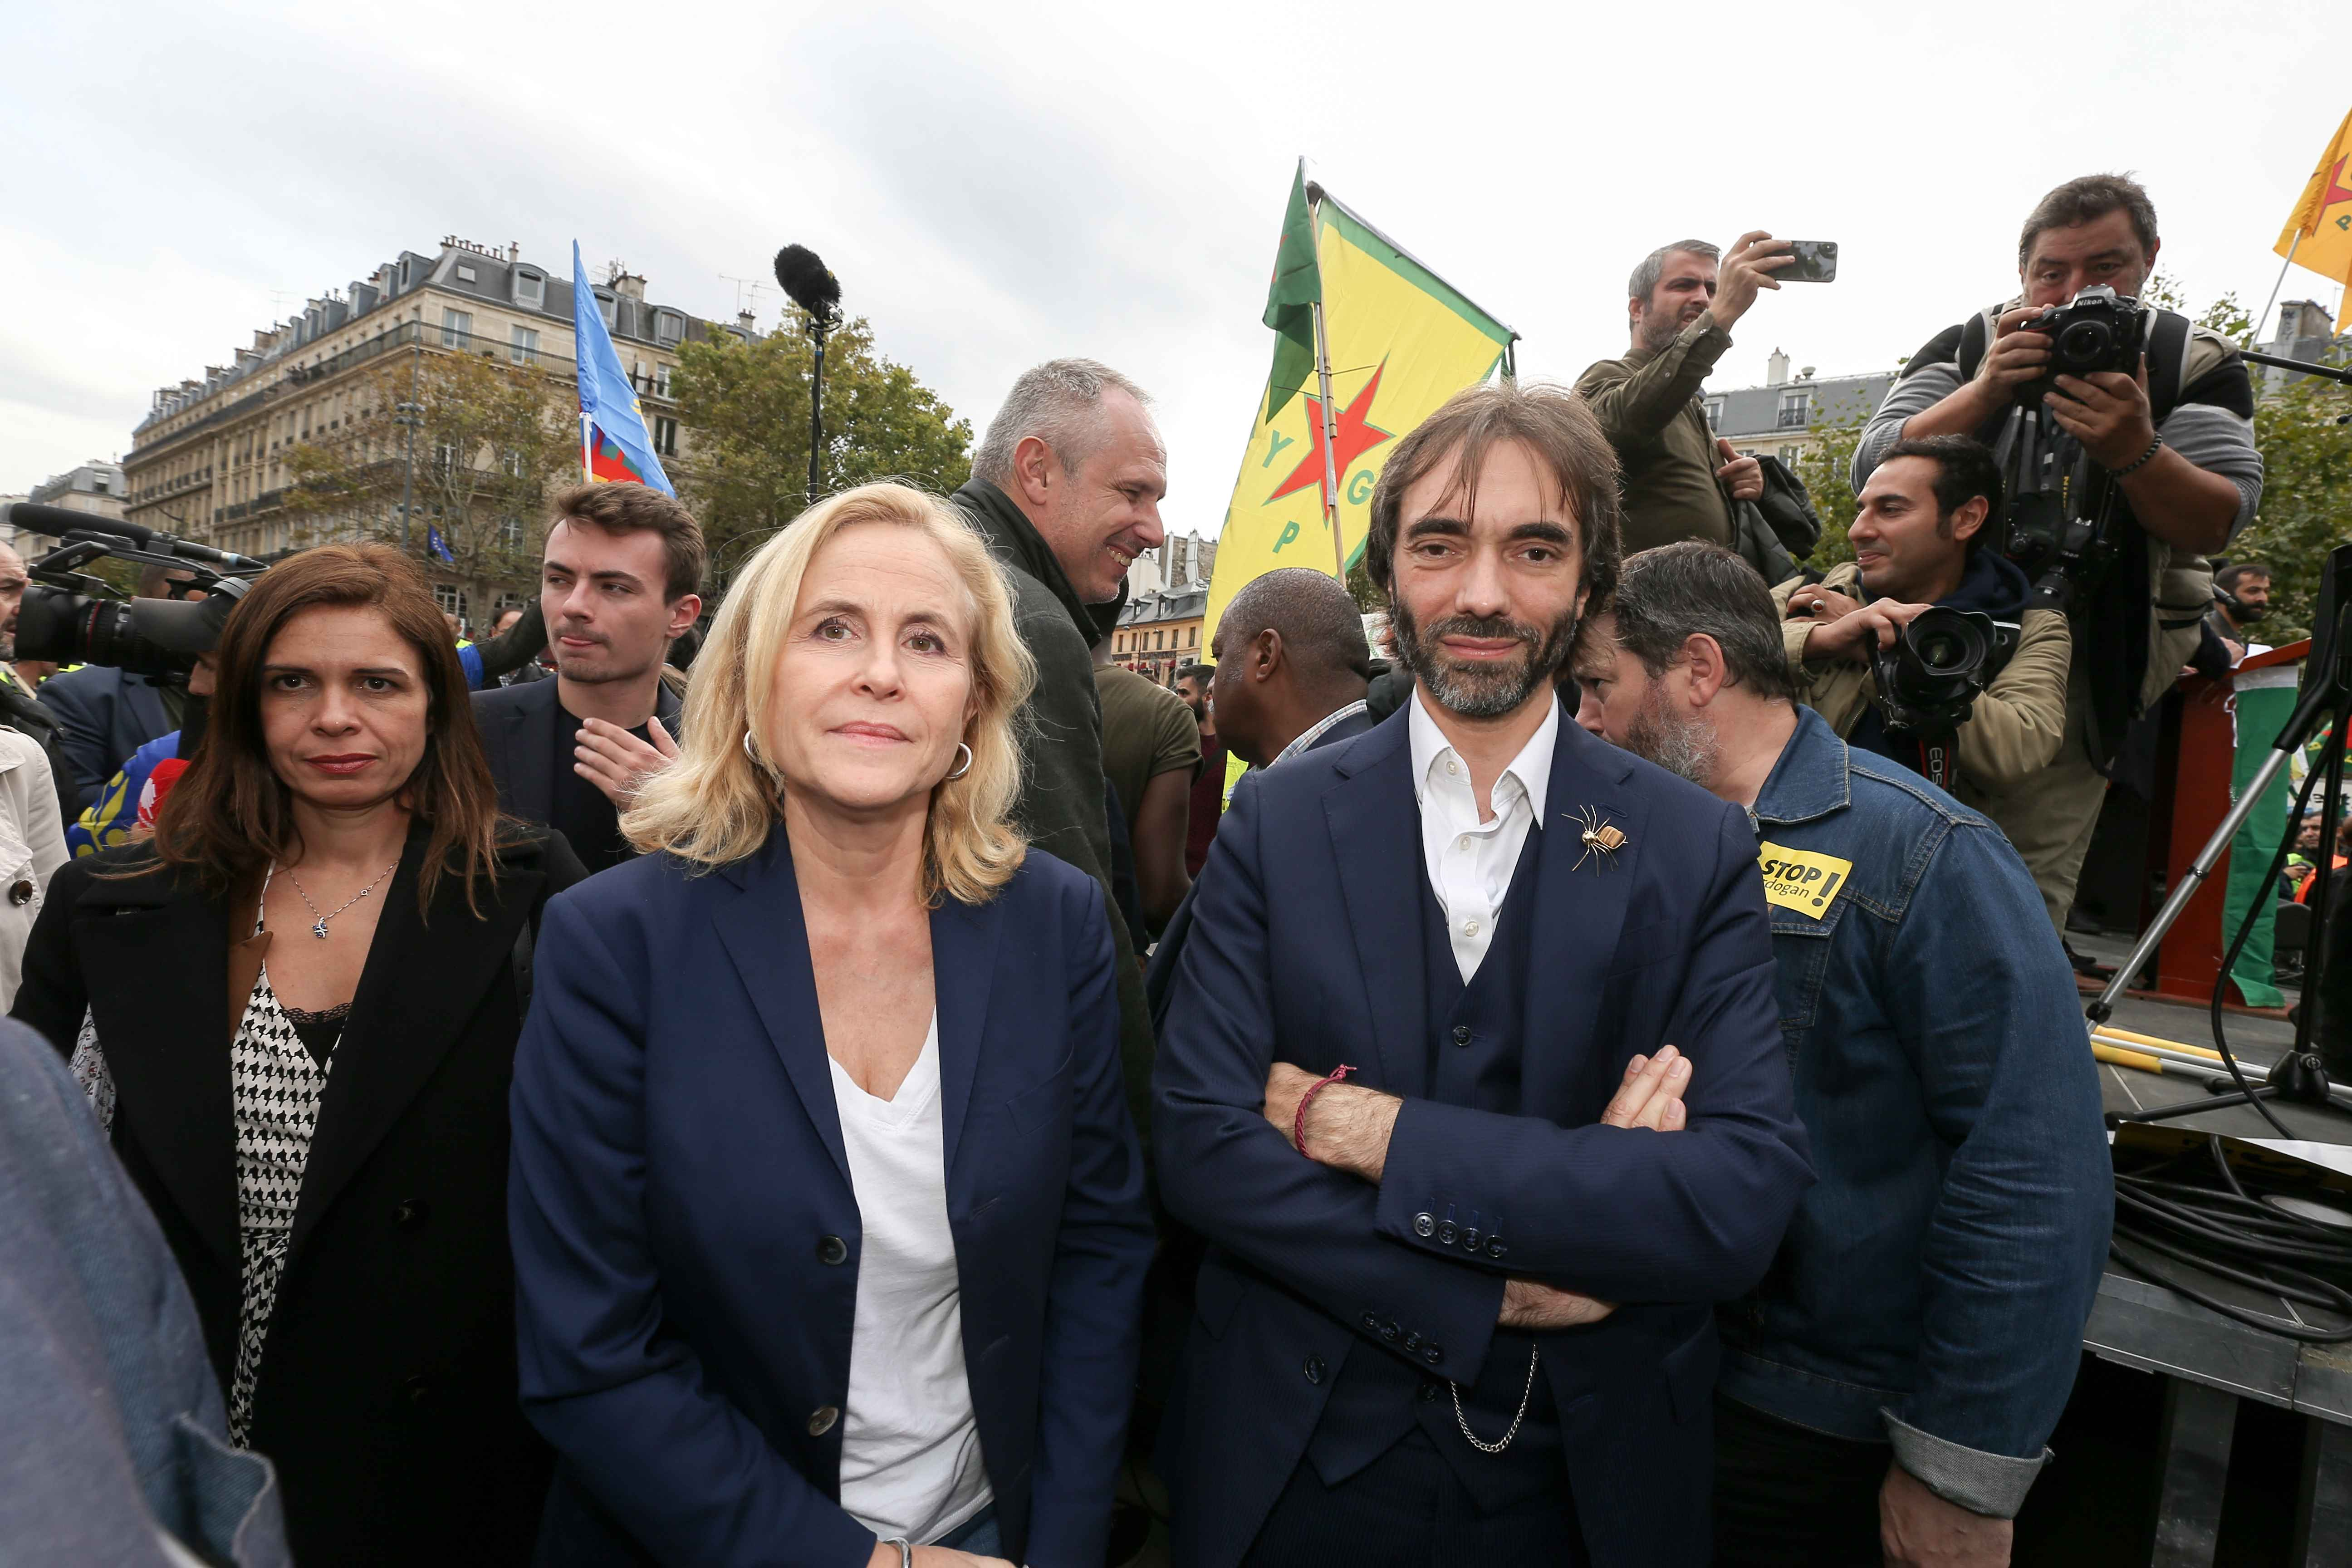 French member of Parliament and candidate for Paris' mayoral election, mathematician Cedric Villani (CR) takes part on October 12, 2019 in Paris in a demonstration in support of the Kurds and against the Turkish offensive in Syria. On October 9, 2019, the